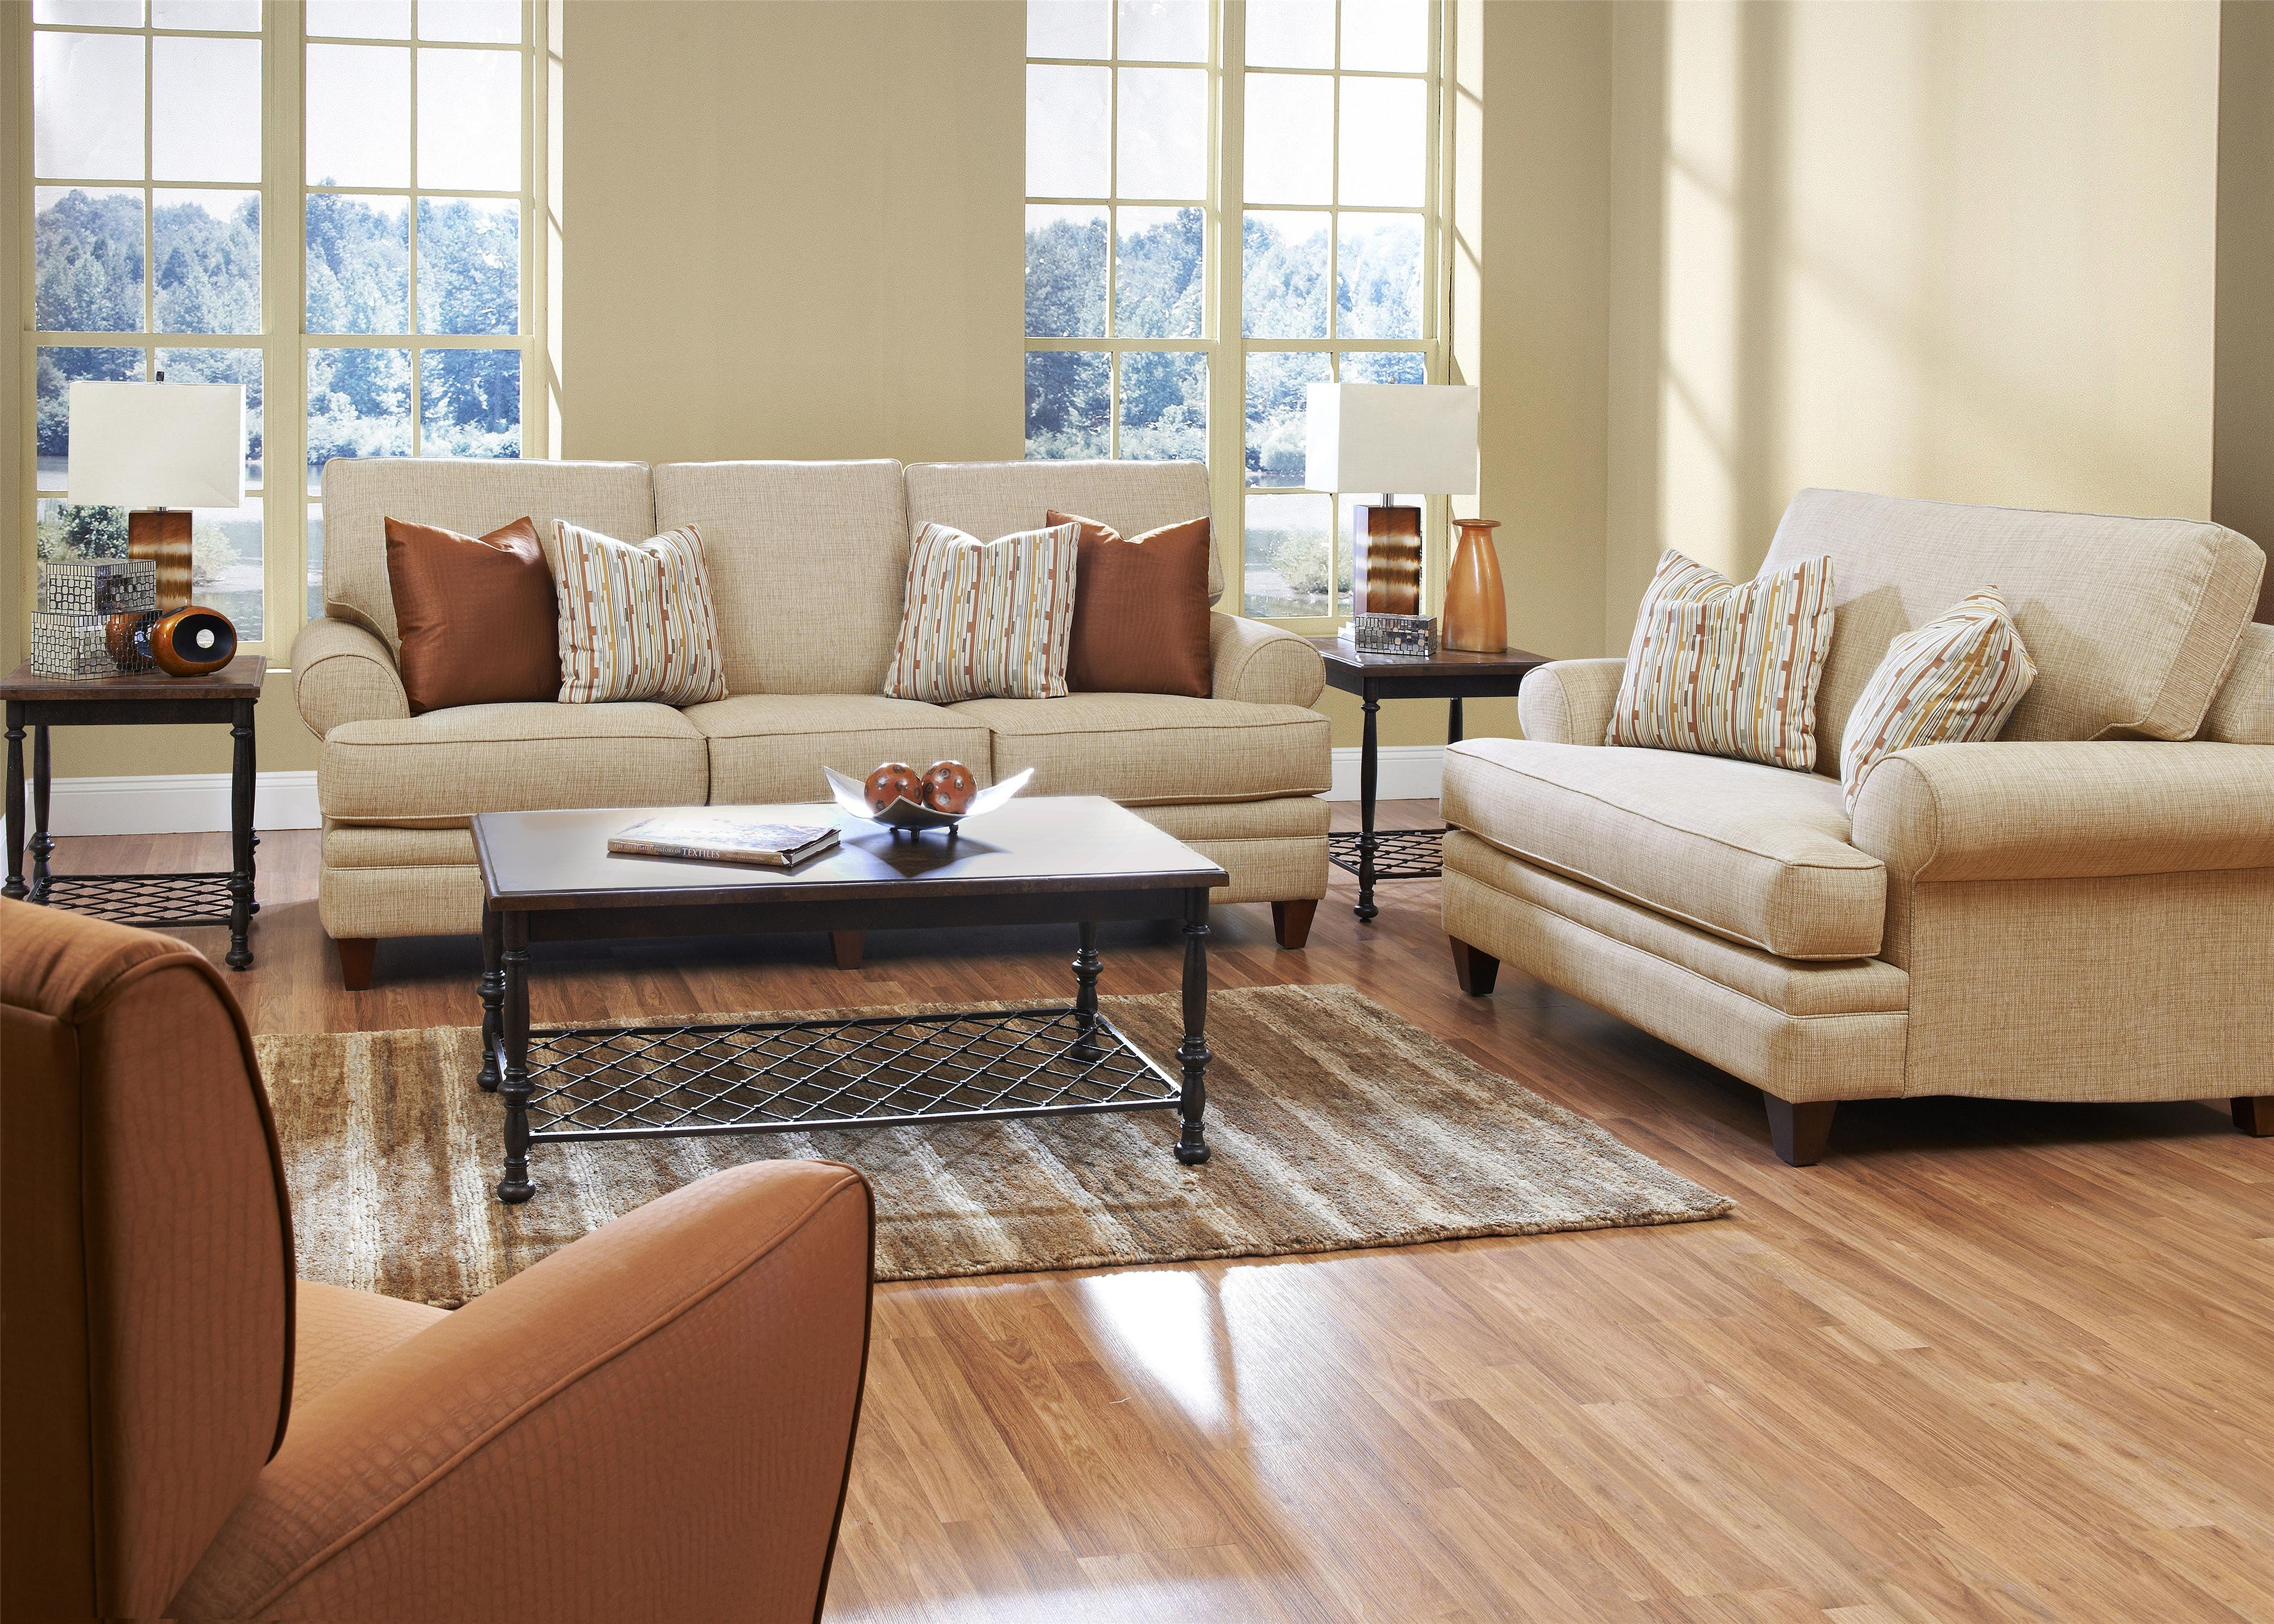 Fresno k by Klaussner Furniture Superstore NM